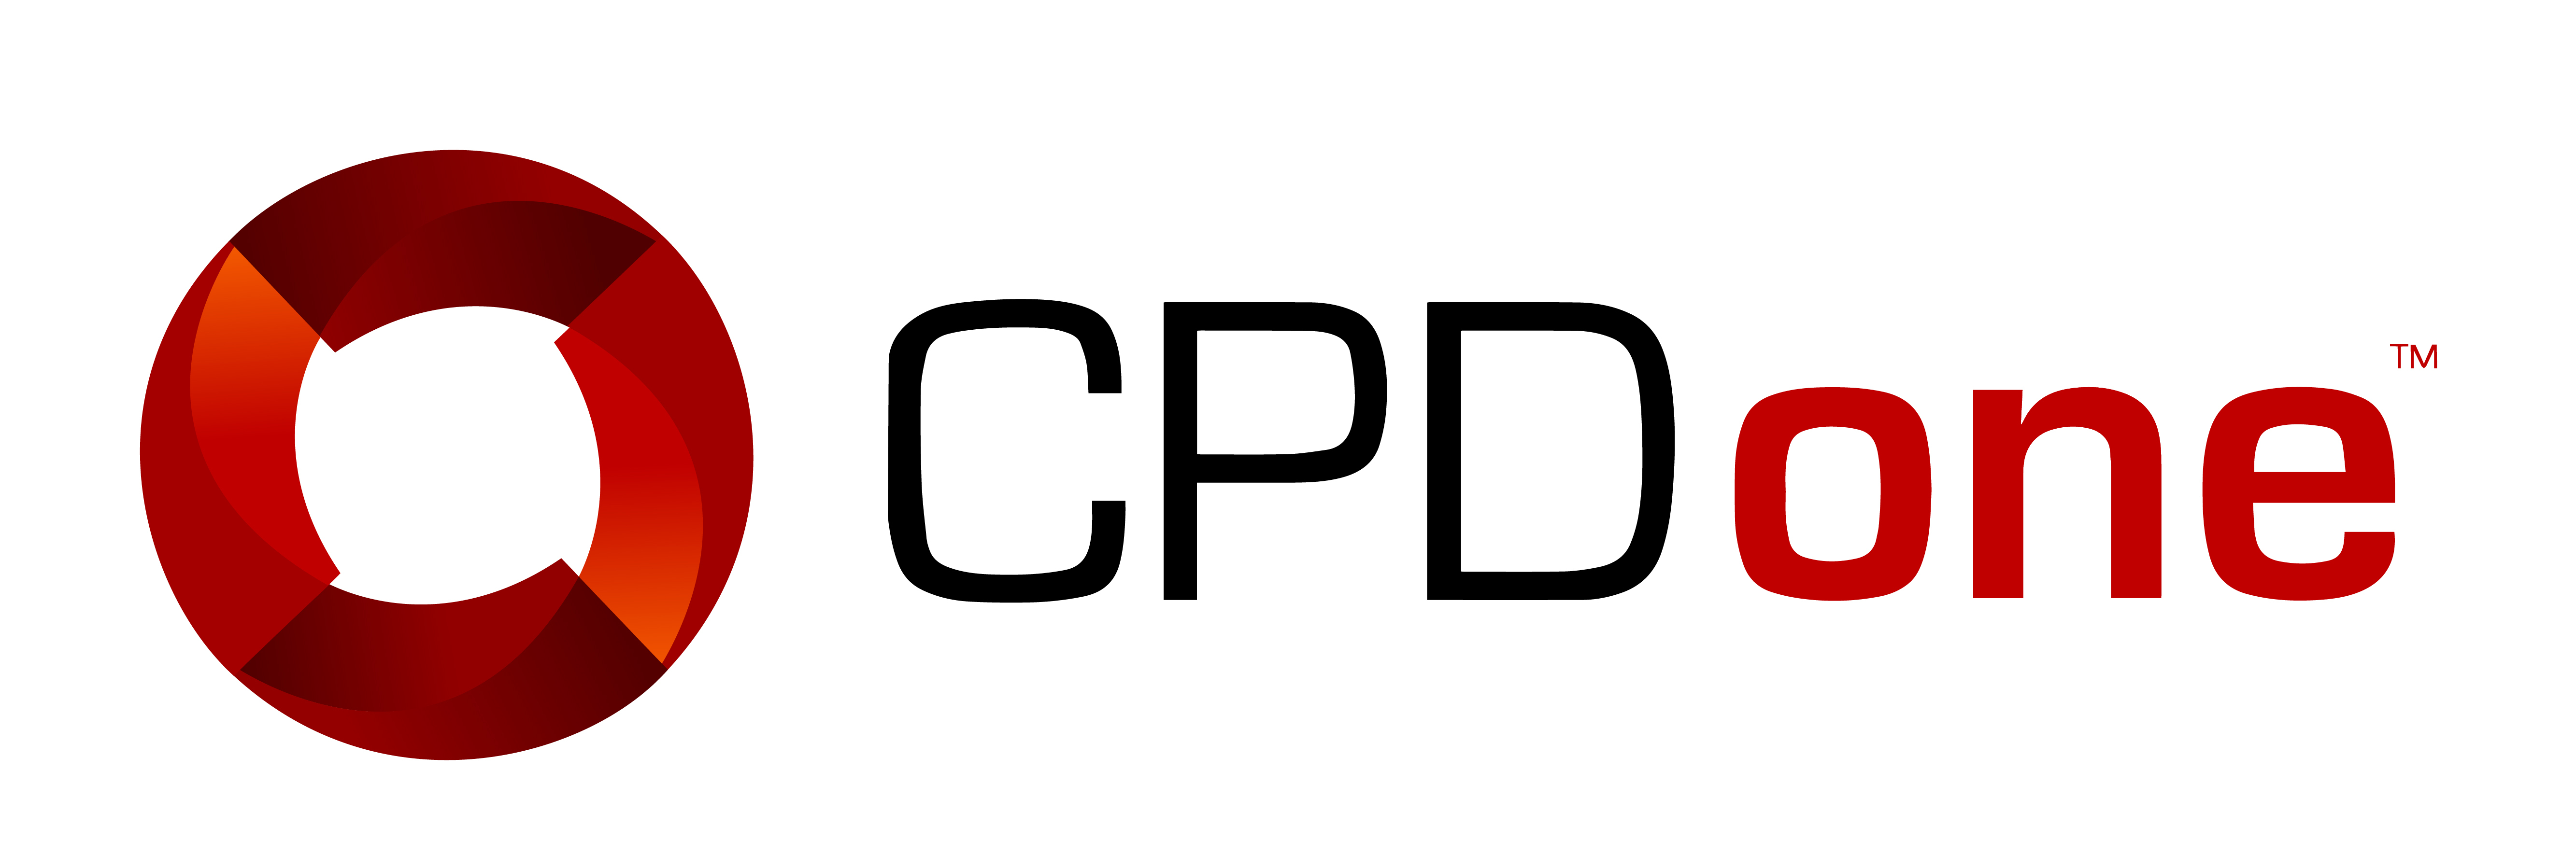 Cpd Recording Spreadsheet For How To Create A Roll Call From A Spreadsheet – Help Desk